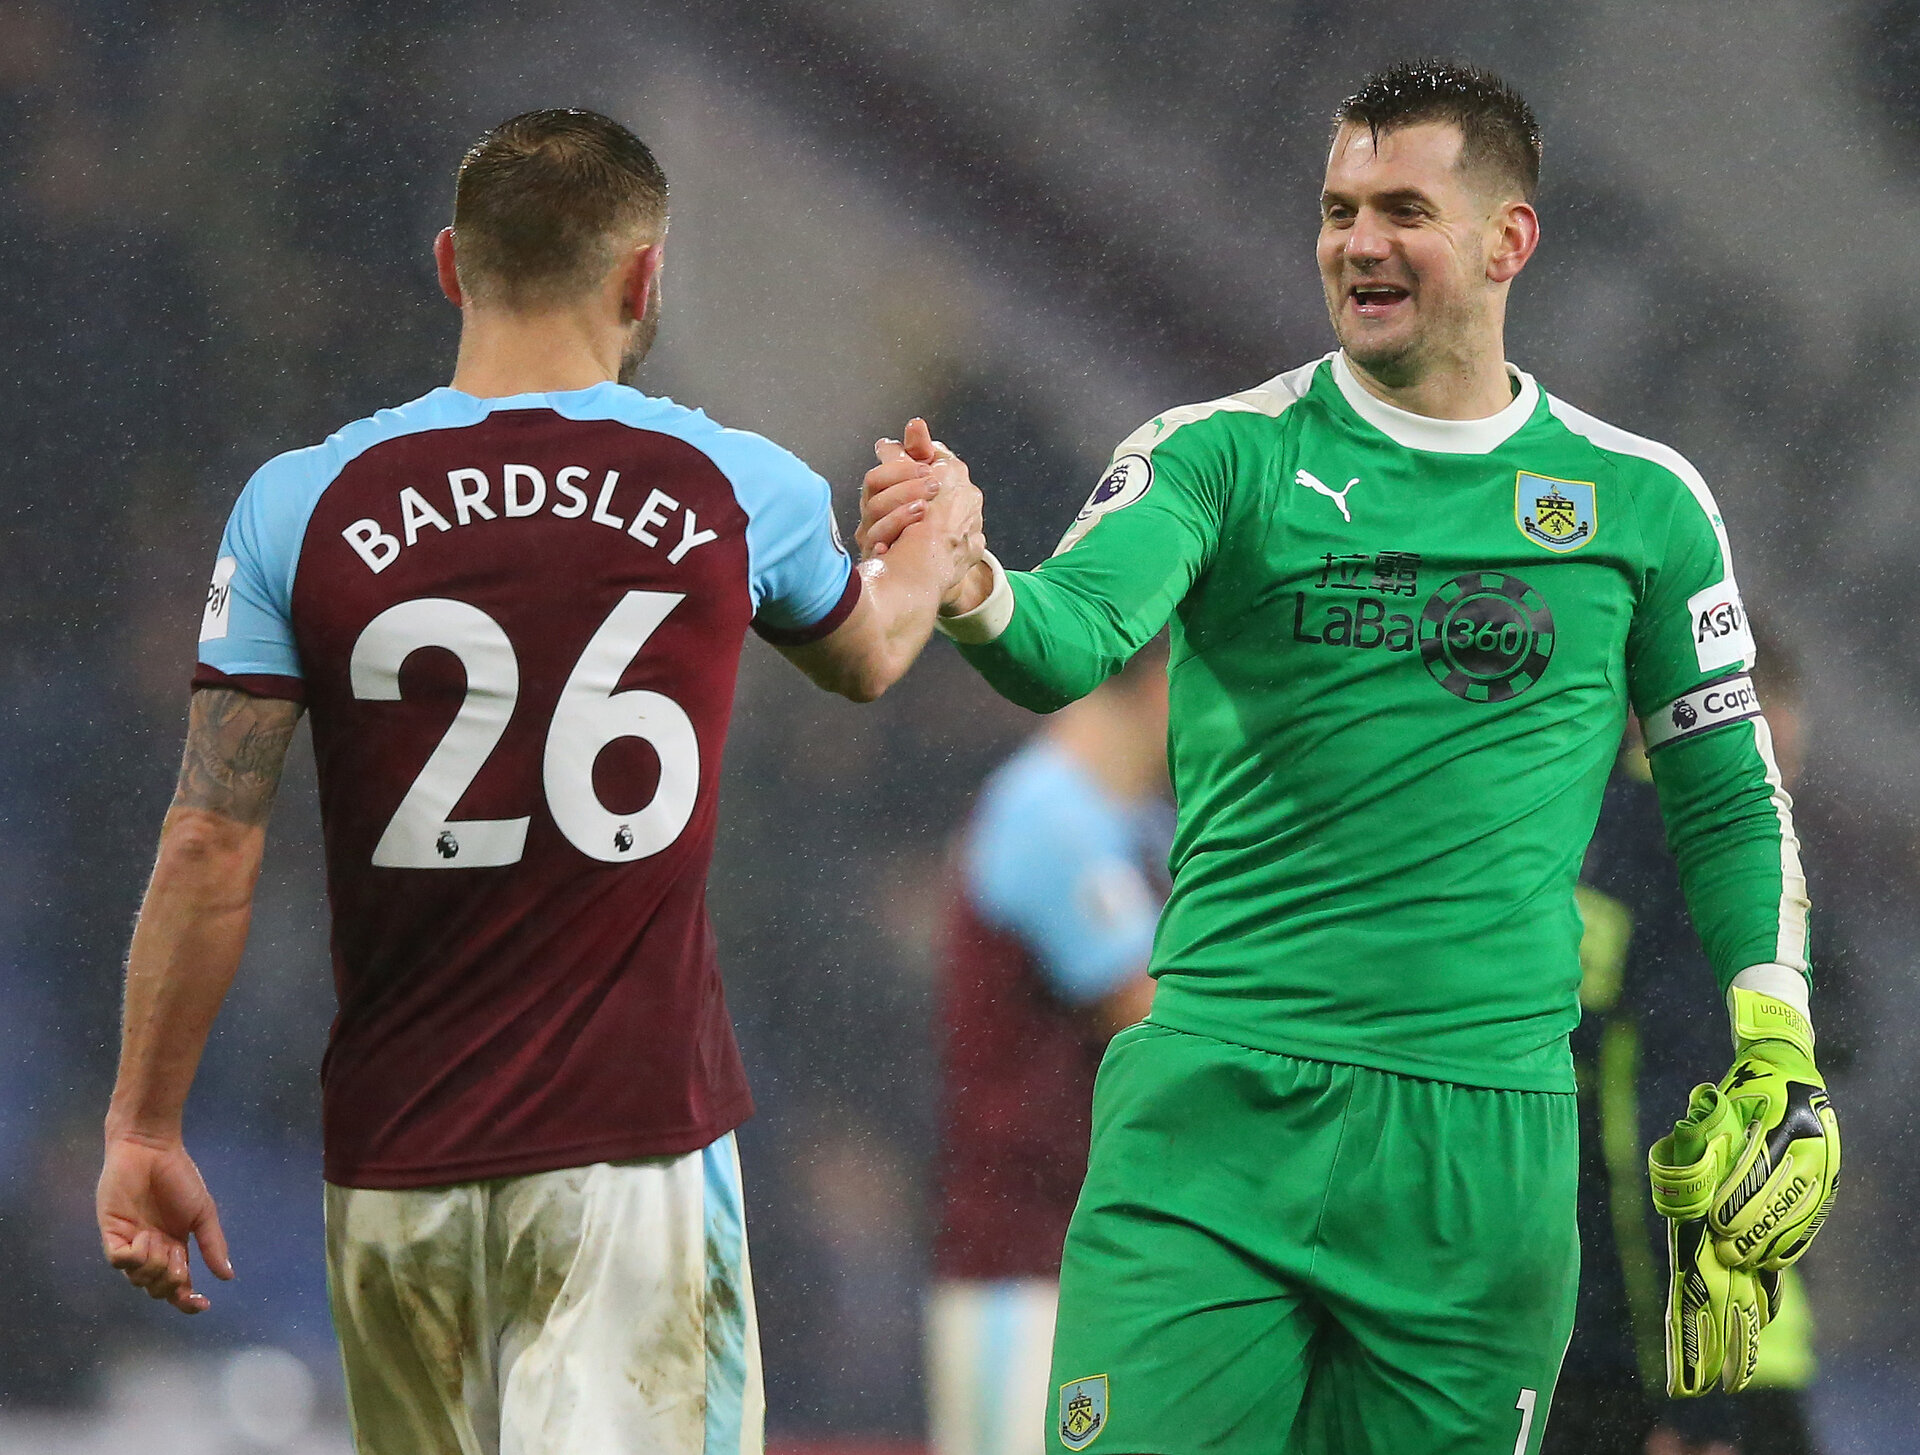 BURNLEY, ENGLAND - JANUARY 12:  Phillip Bardsley and Thomas Heaton of Burnley celebrate following the Premier League match between Burnley FC and Fulham FC at Turf Moor on January 12, 2019 in Burnley, United Kingdom.  (Photo by Alex Livesey/Getty Images)